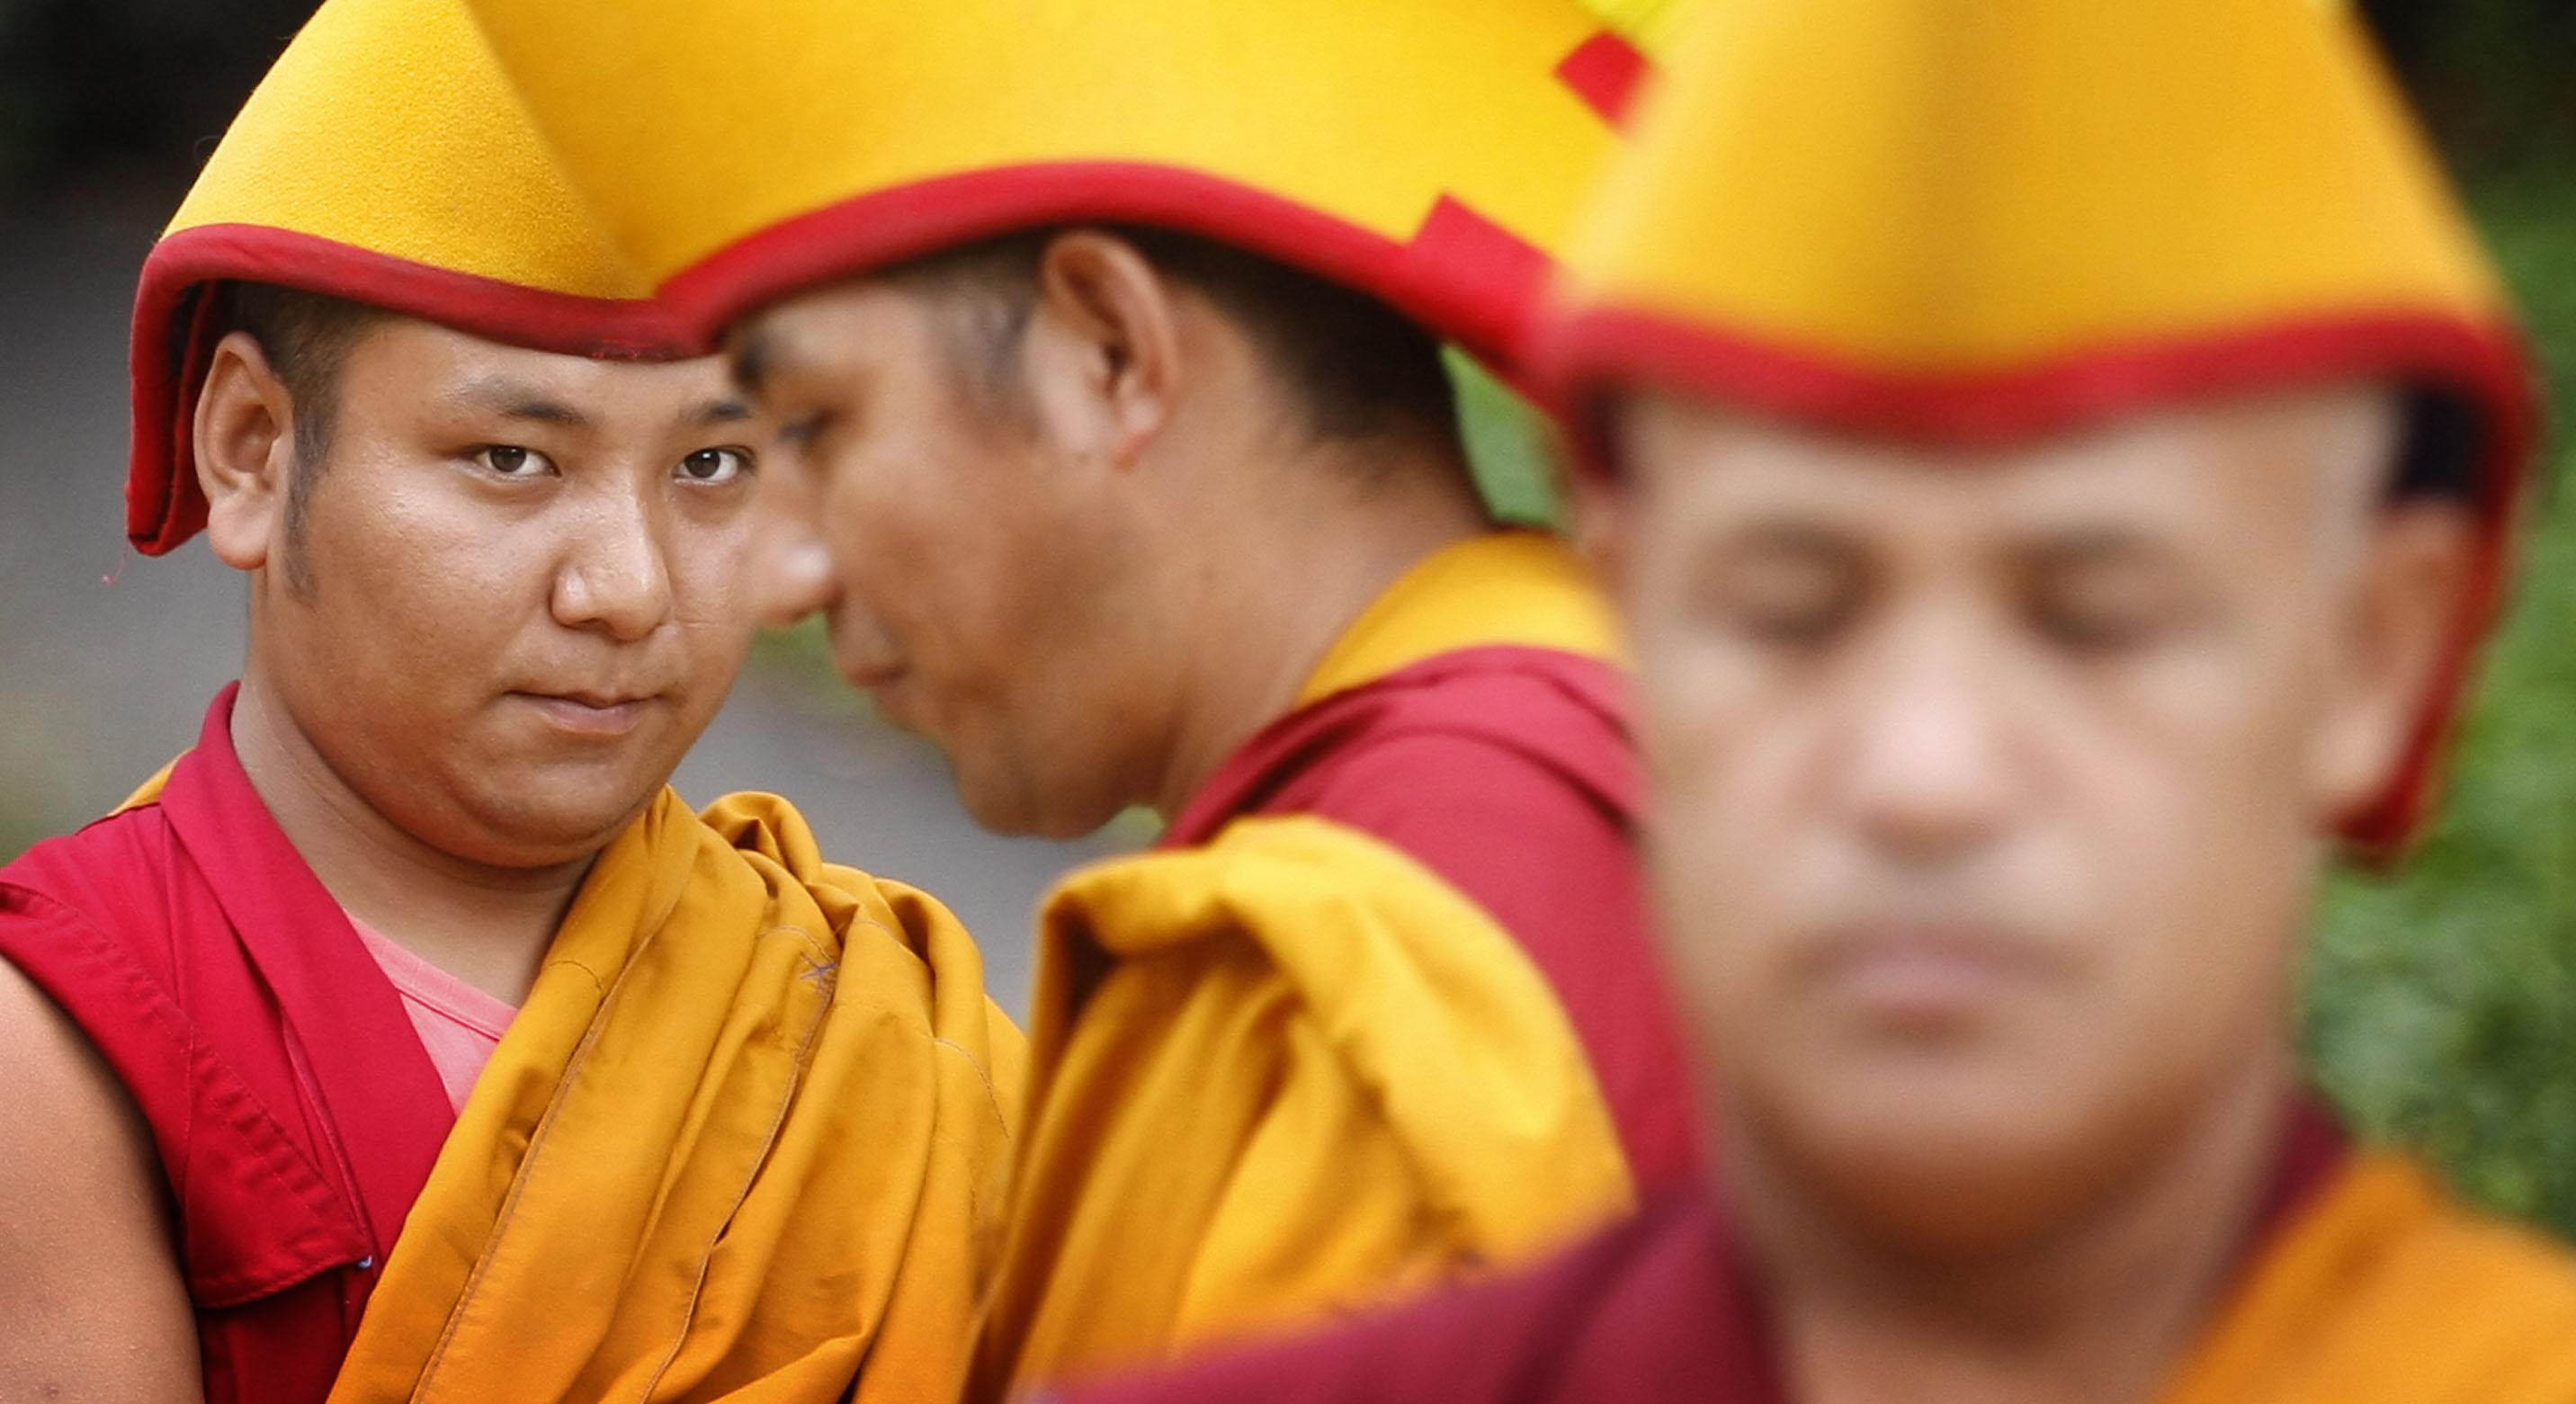 You Can Now Rent A Buddhist Monk Online, Because Amazon PA 9361989